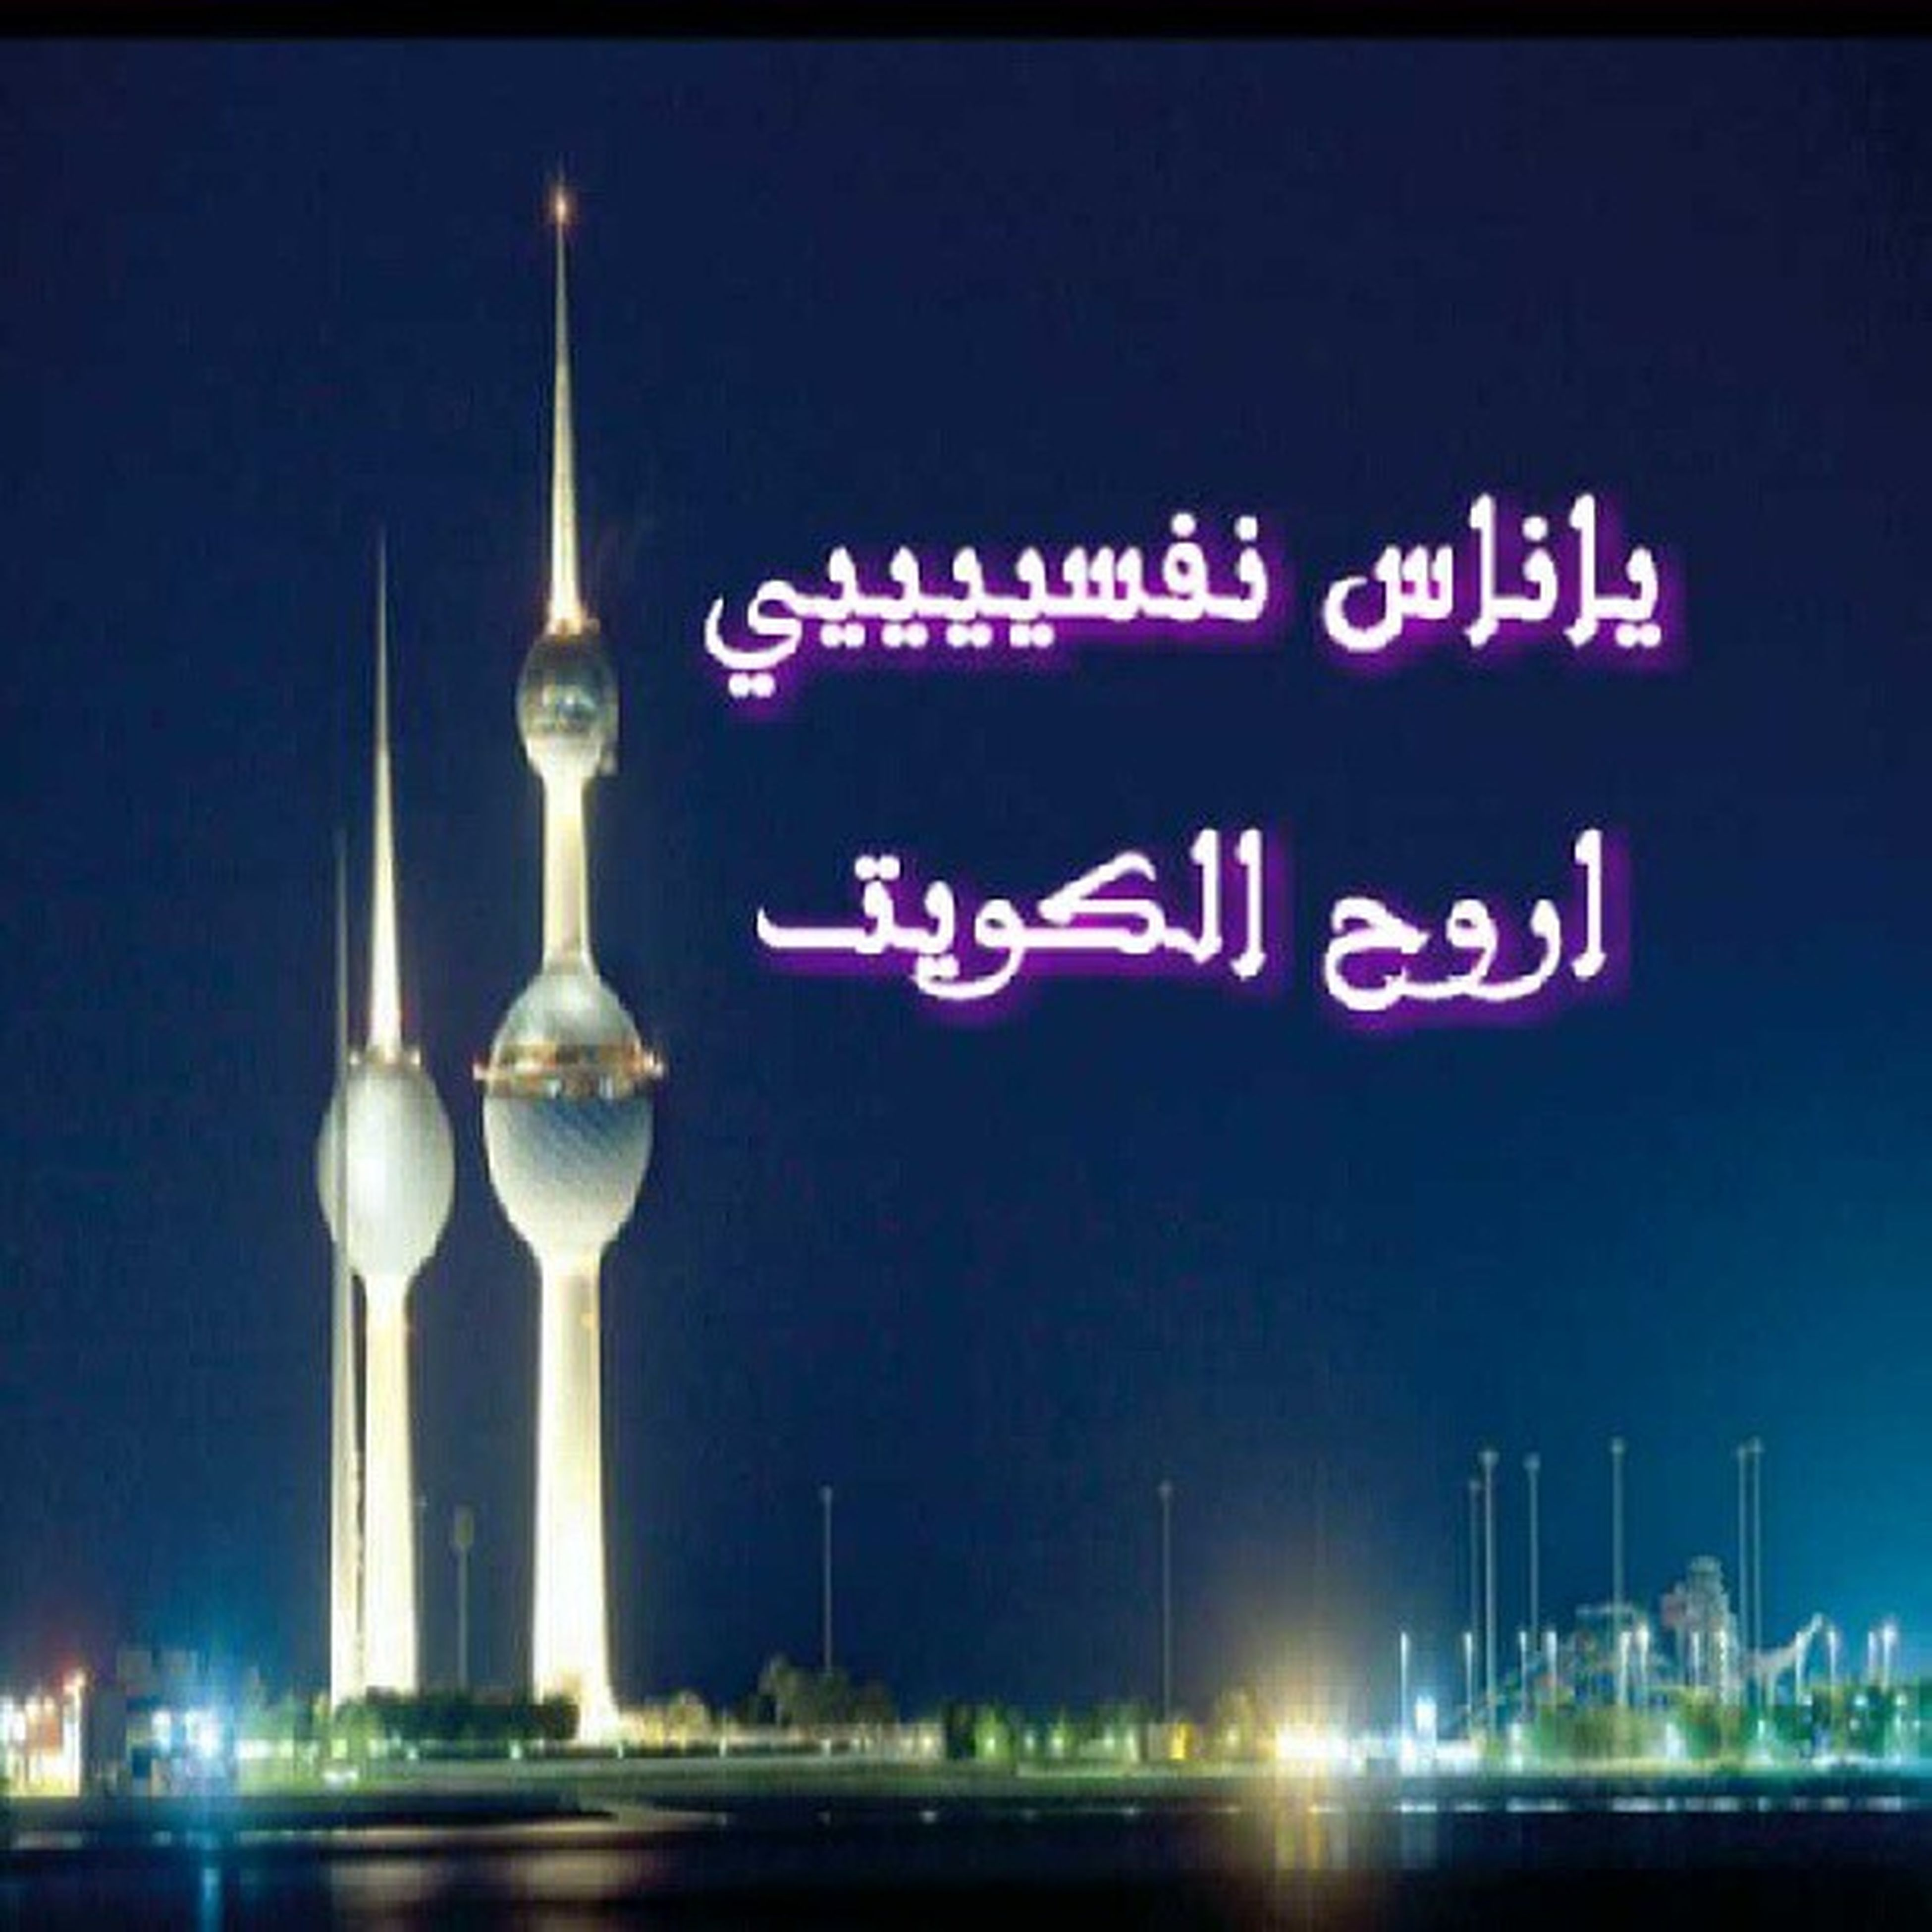 communication, illuminated, night, architecture, built structure, water, waterfront, city, building exterior, text, guidance, blue, western script, tower, clear sky, travel destinations, communications tower, sea, reflection, international landmark